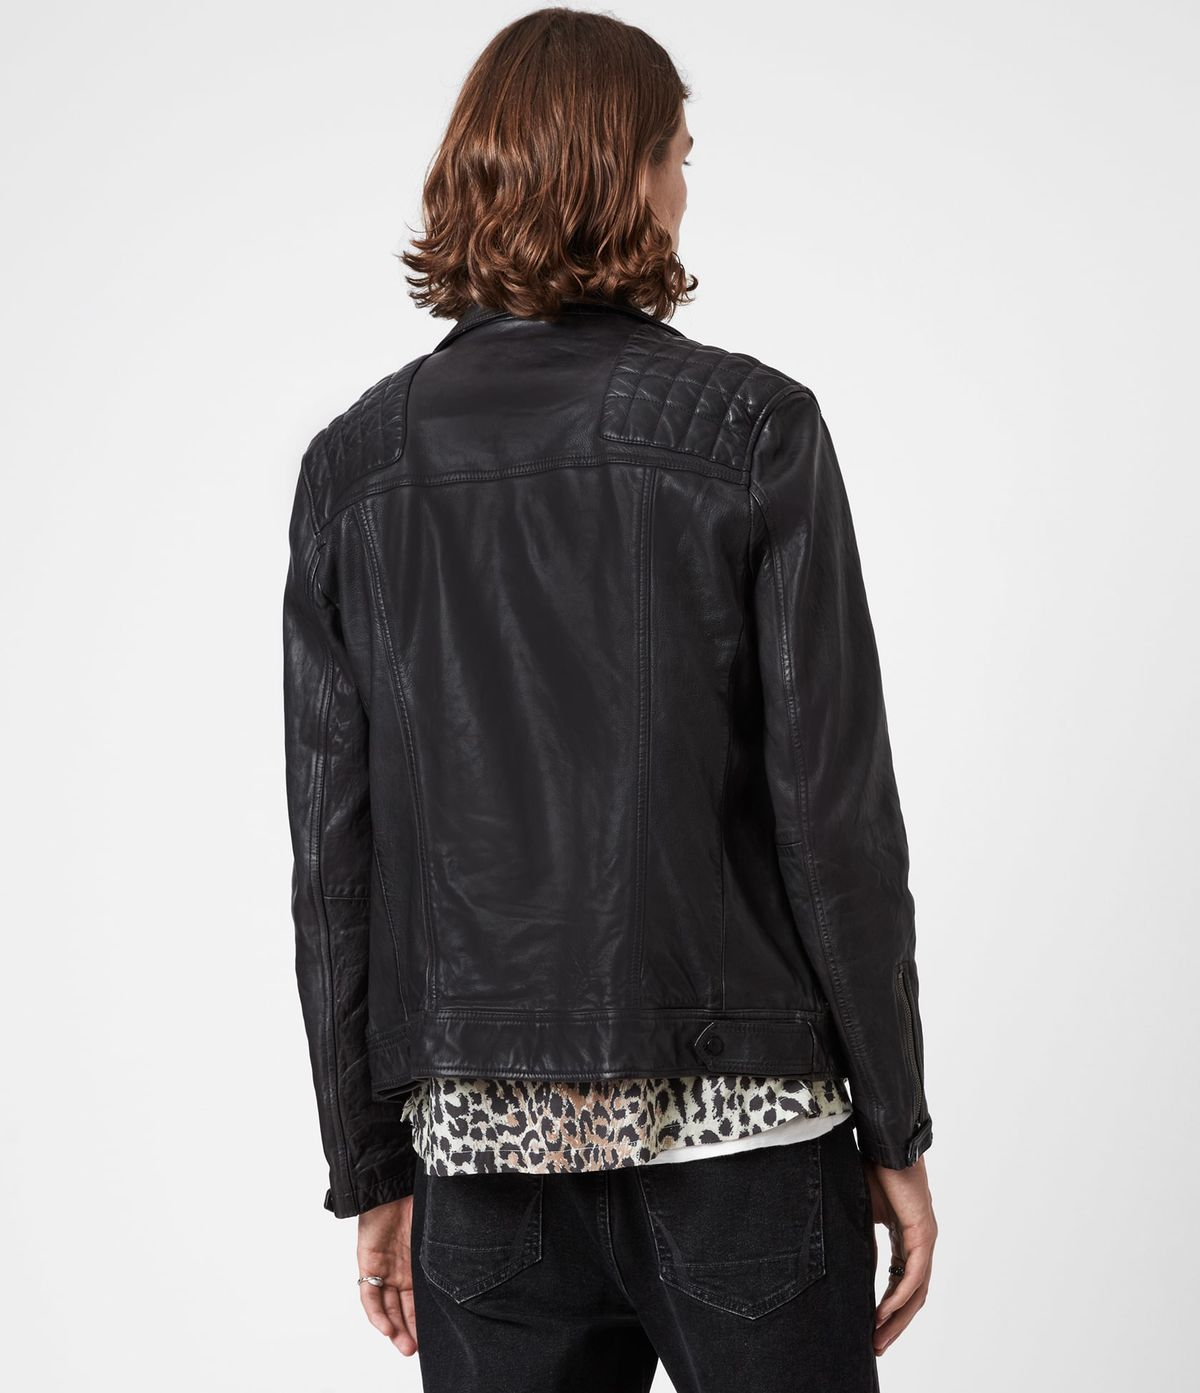 Men's Conroy Leather Jacket - Back View